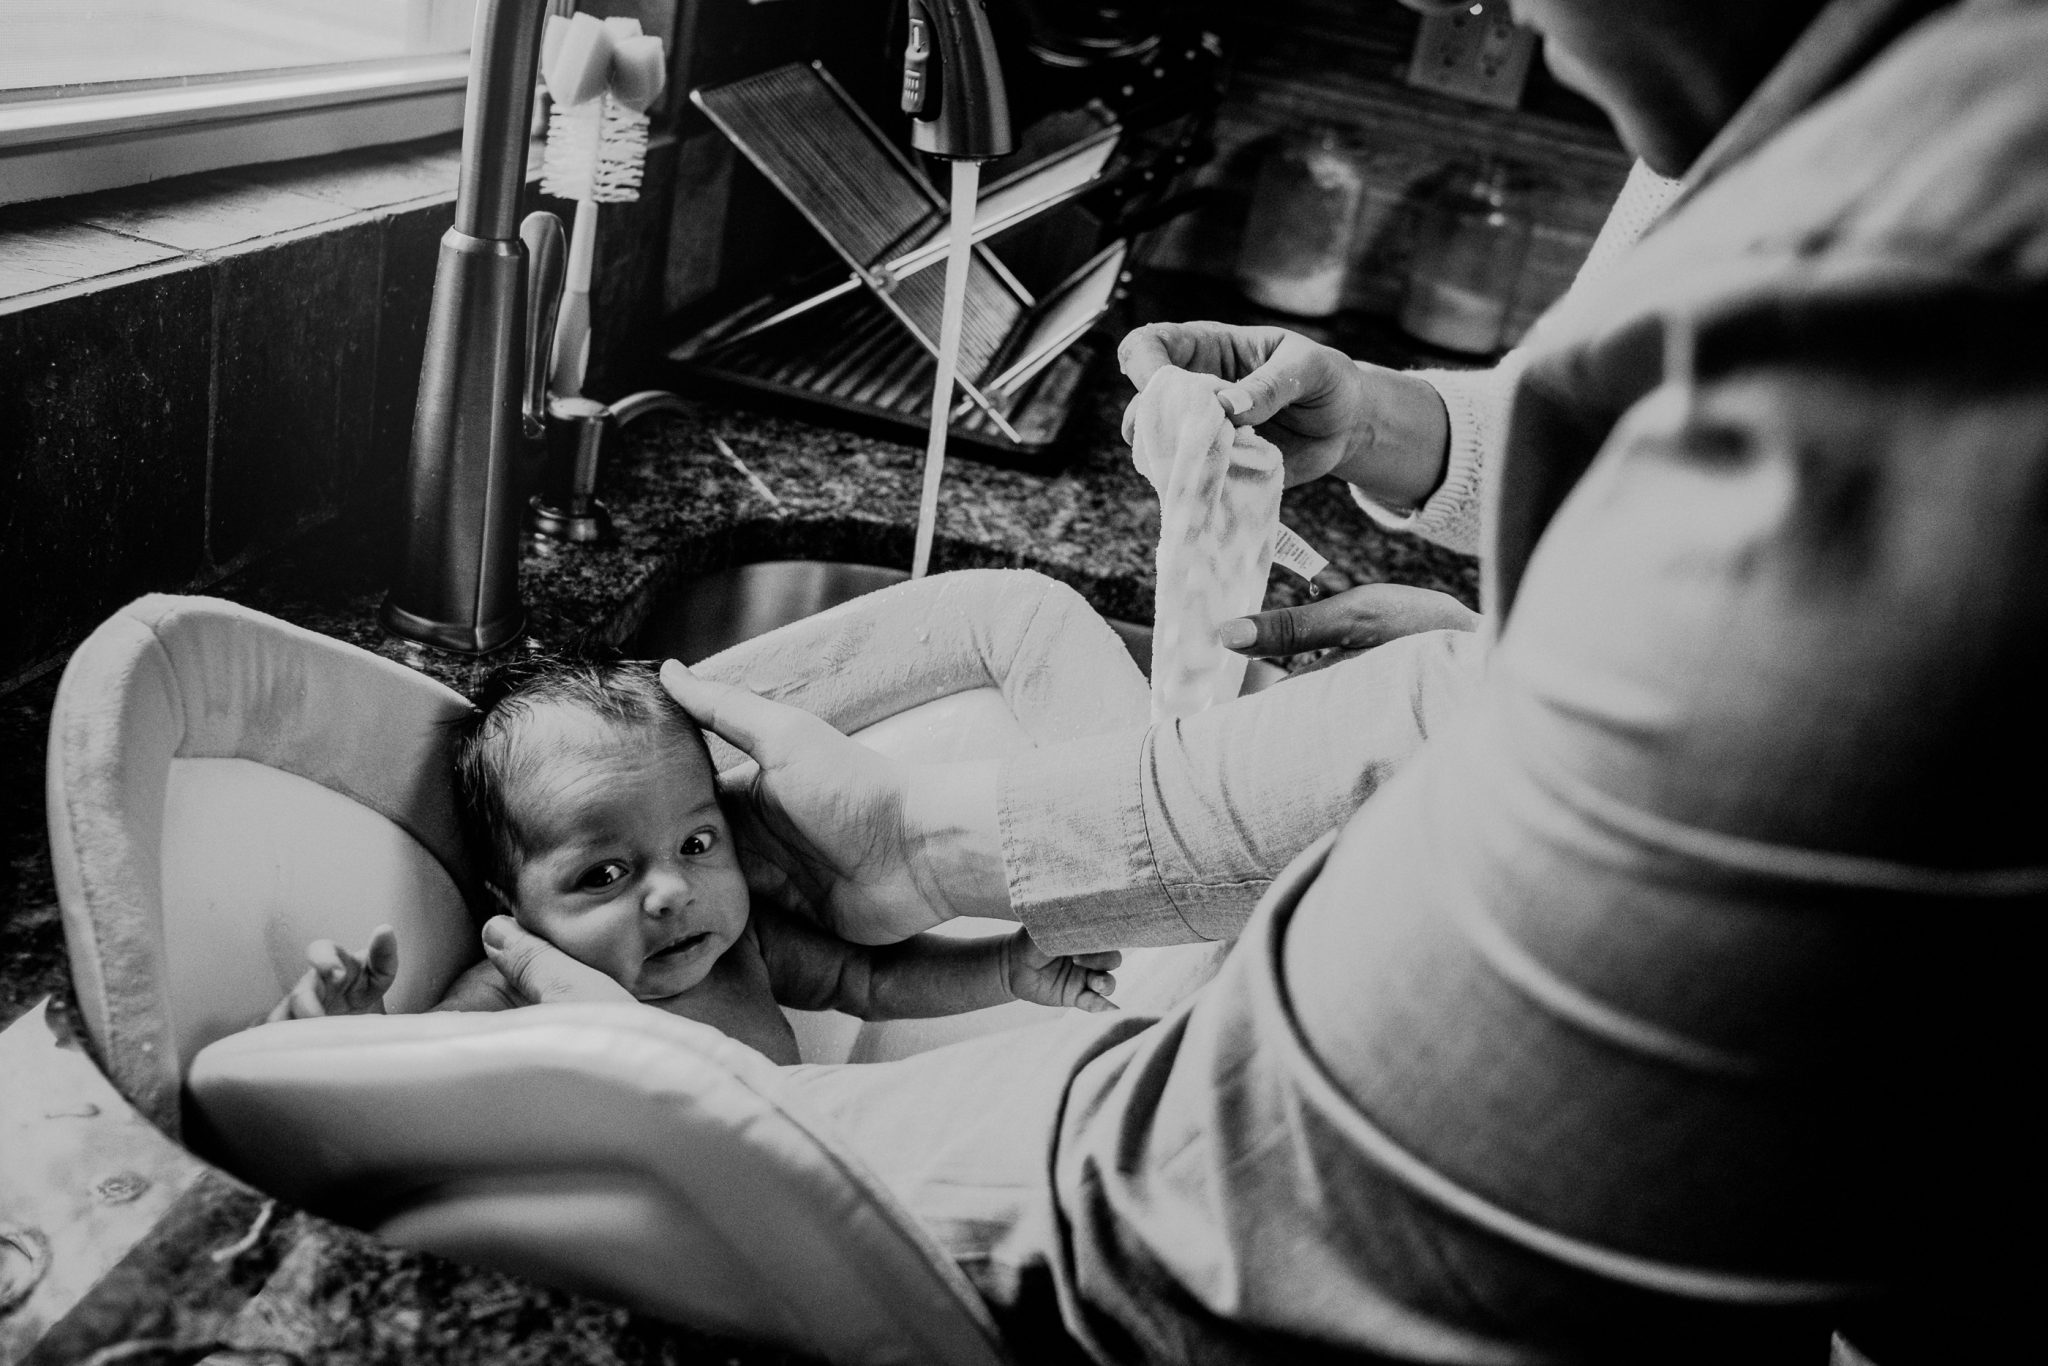 baby's first bath expression in black and white image